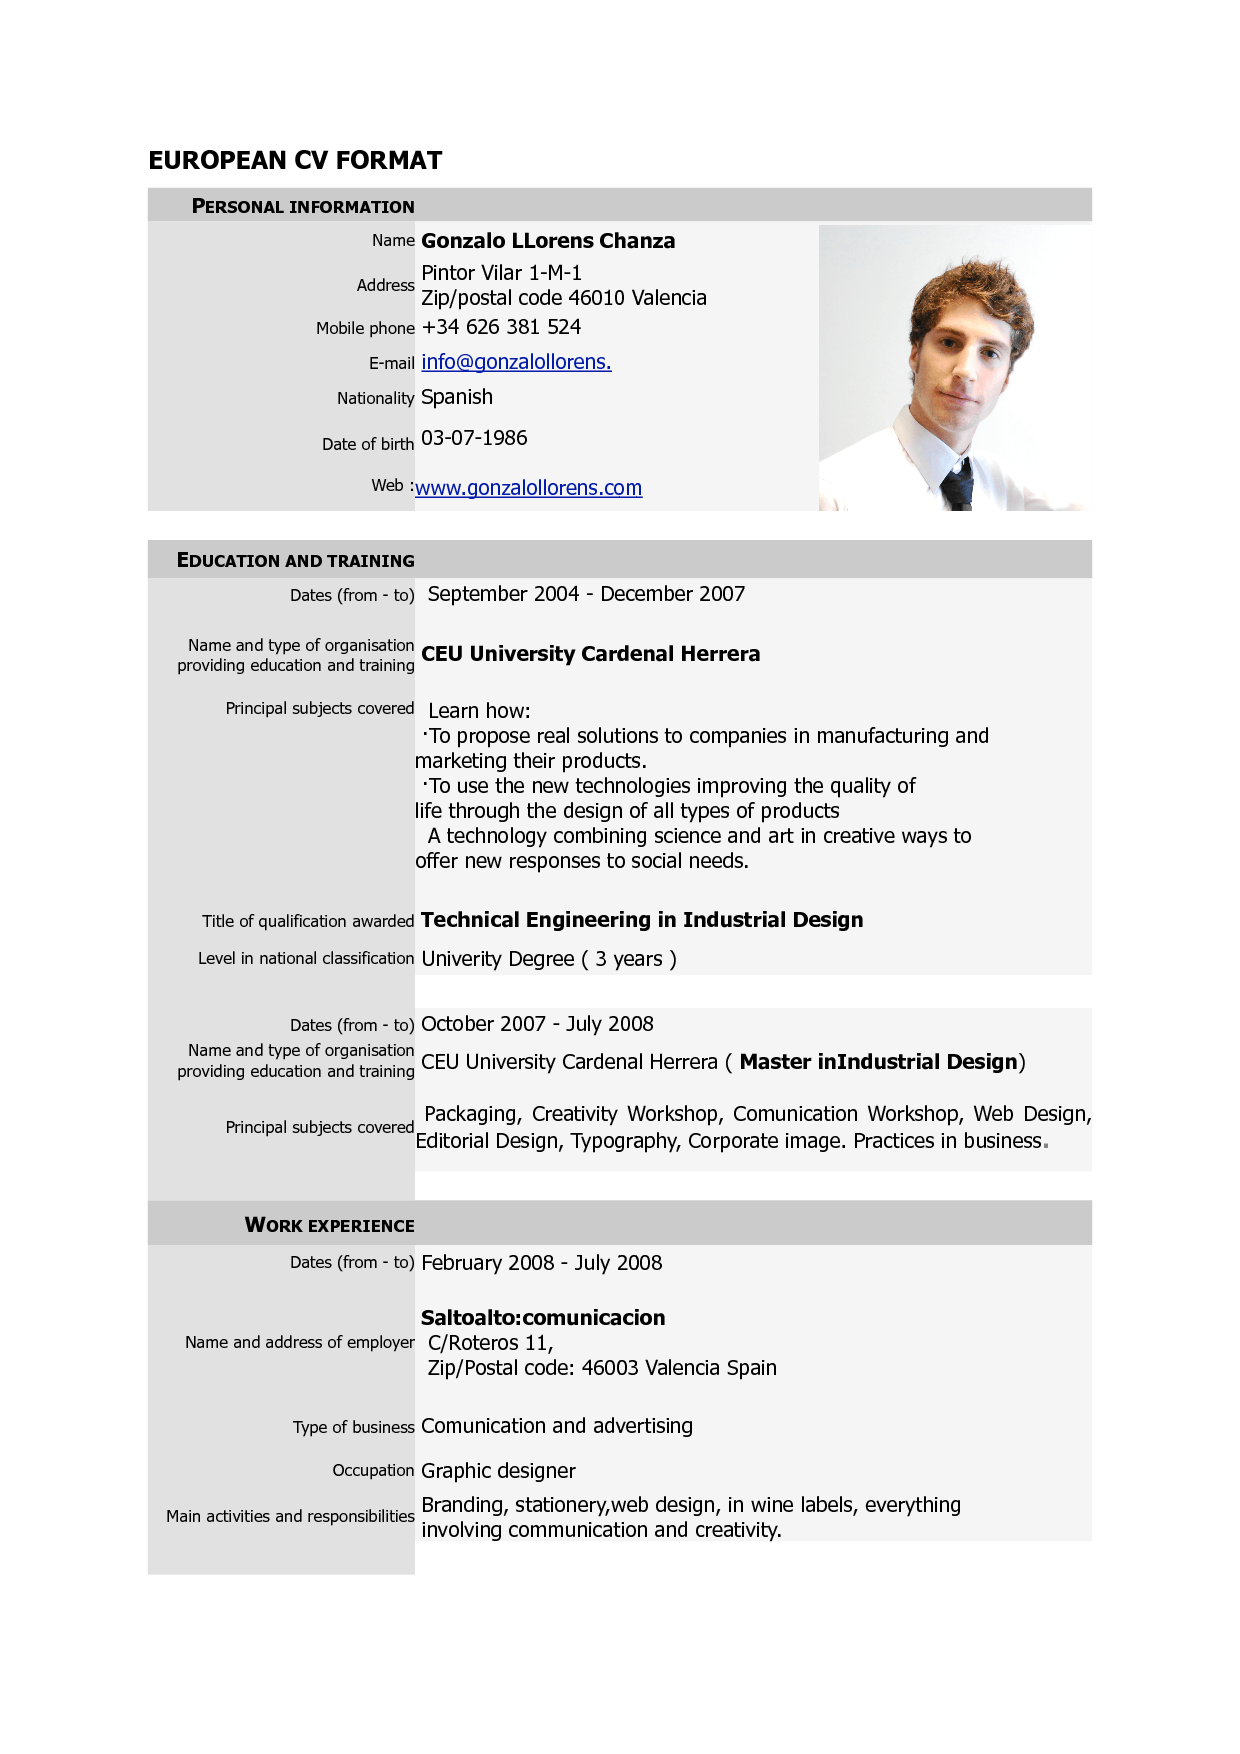 Resume Templates For Word 2007 Endearing Formatforwritingaresume47755480Bbnysr 1240×1754